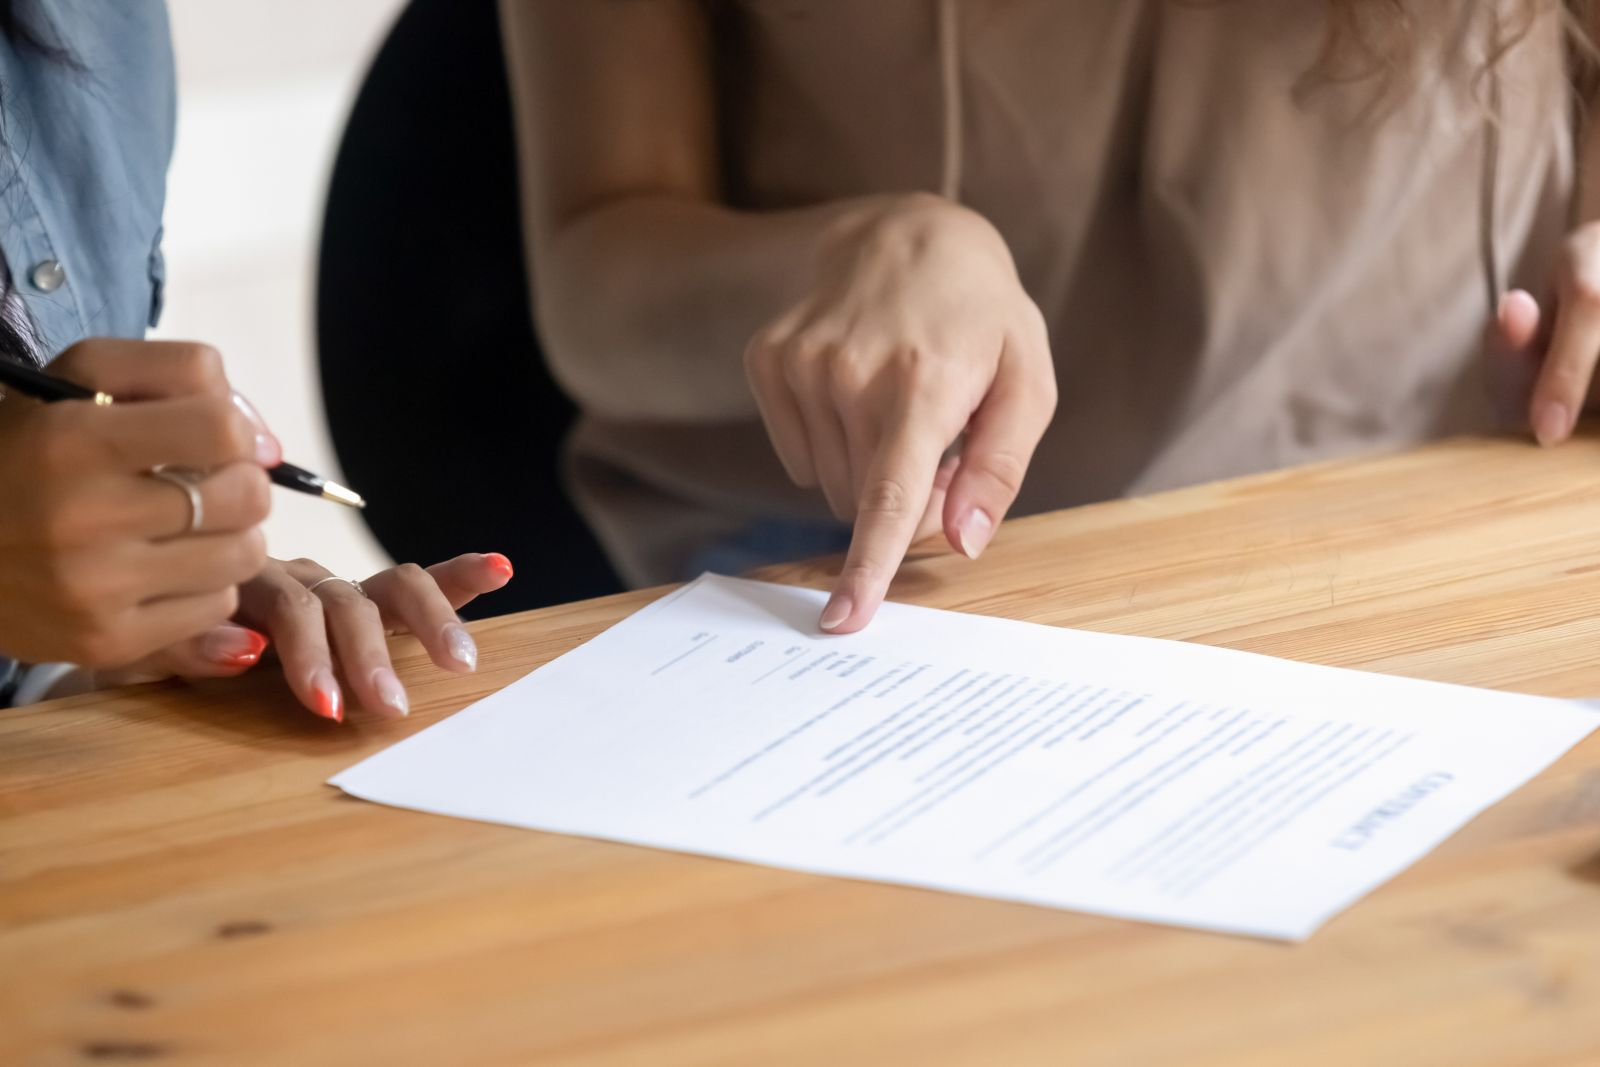 Close up view of client customer hand put signature on business contract, female lawyer solicitor pointing at paper showing where to sign document selling services making financial legal deal concept